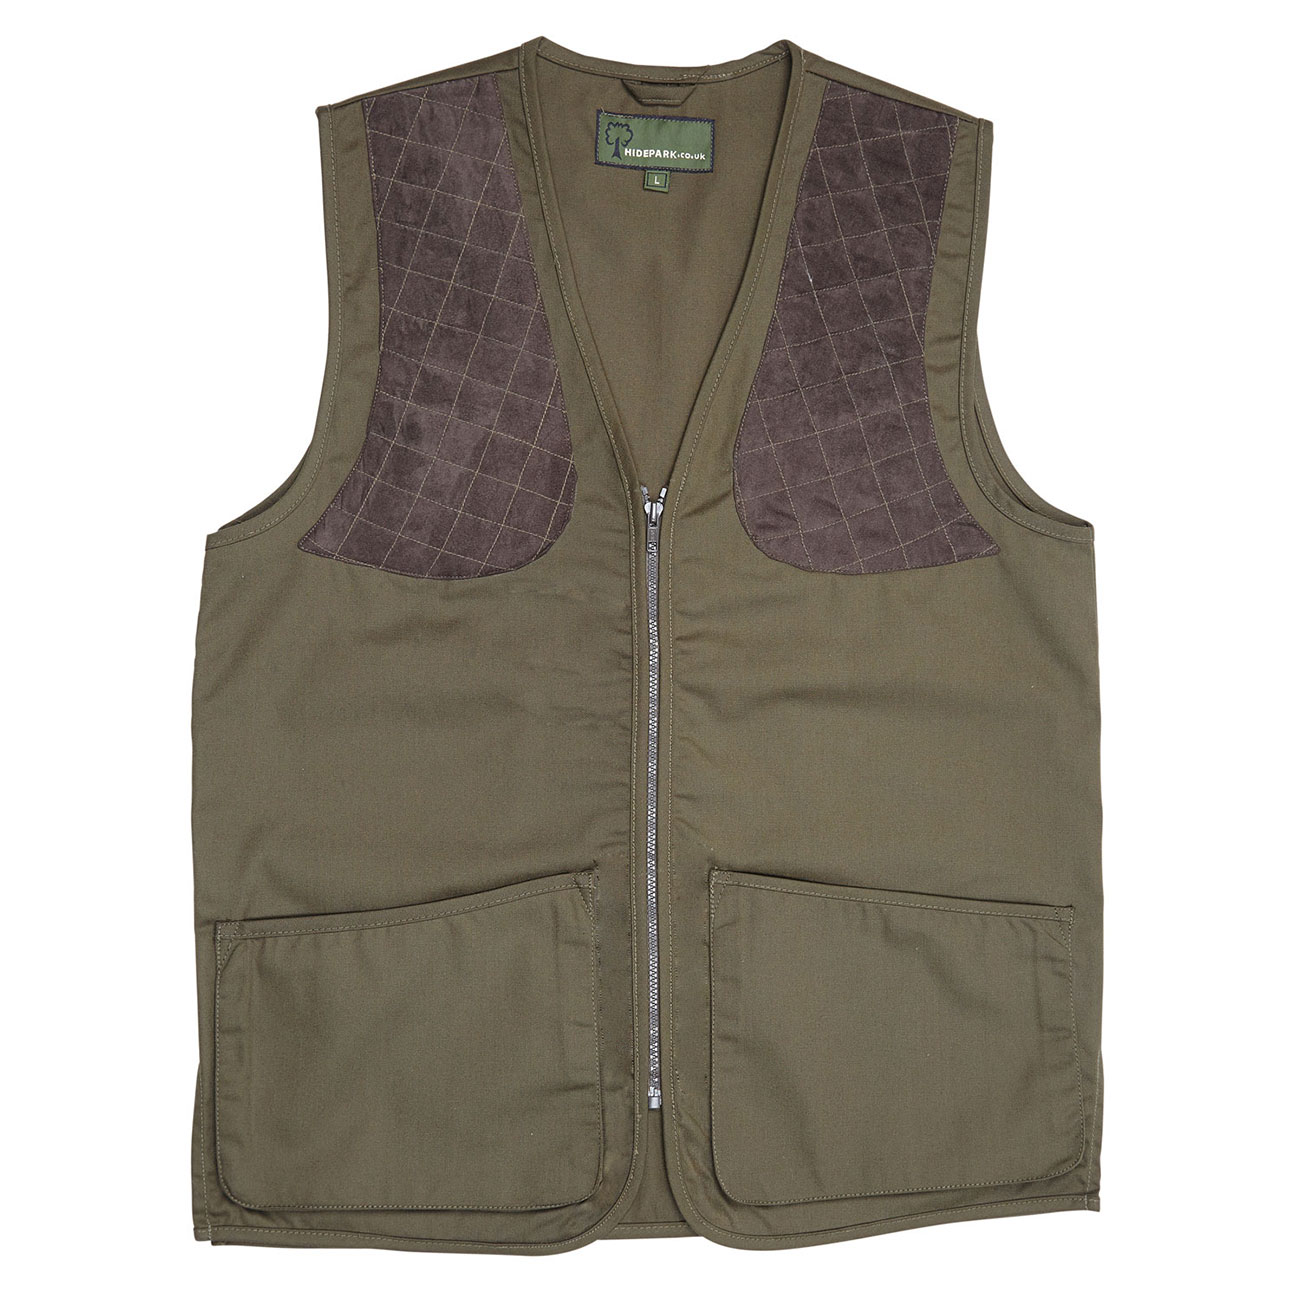 Gents cotton canvas shooting vest Green SV